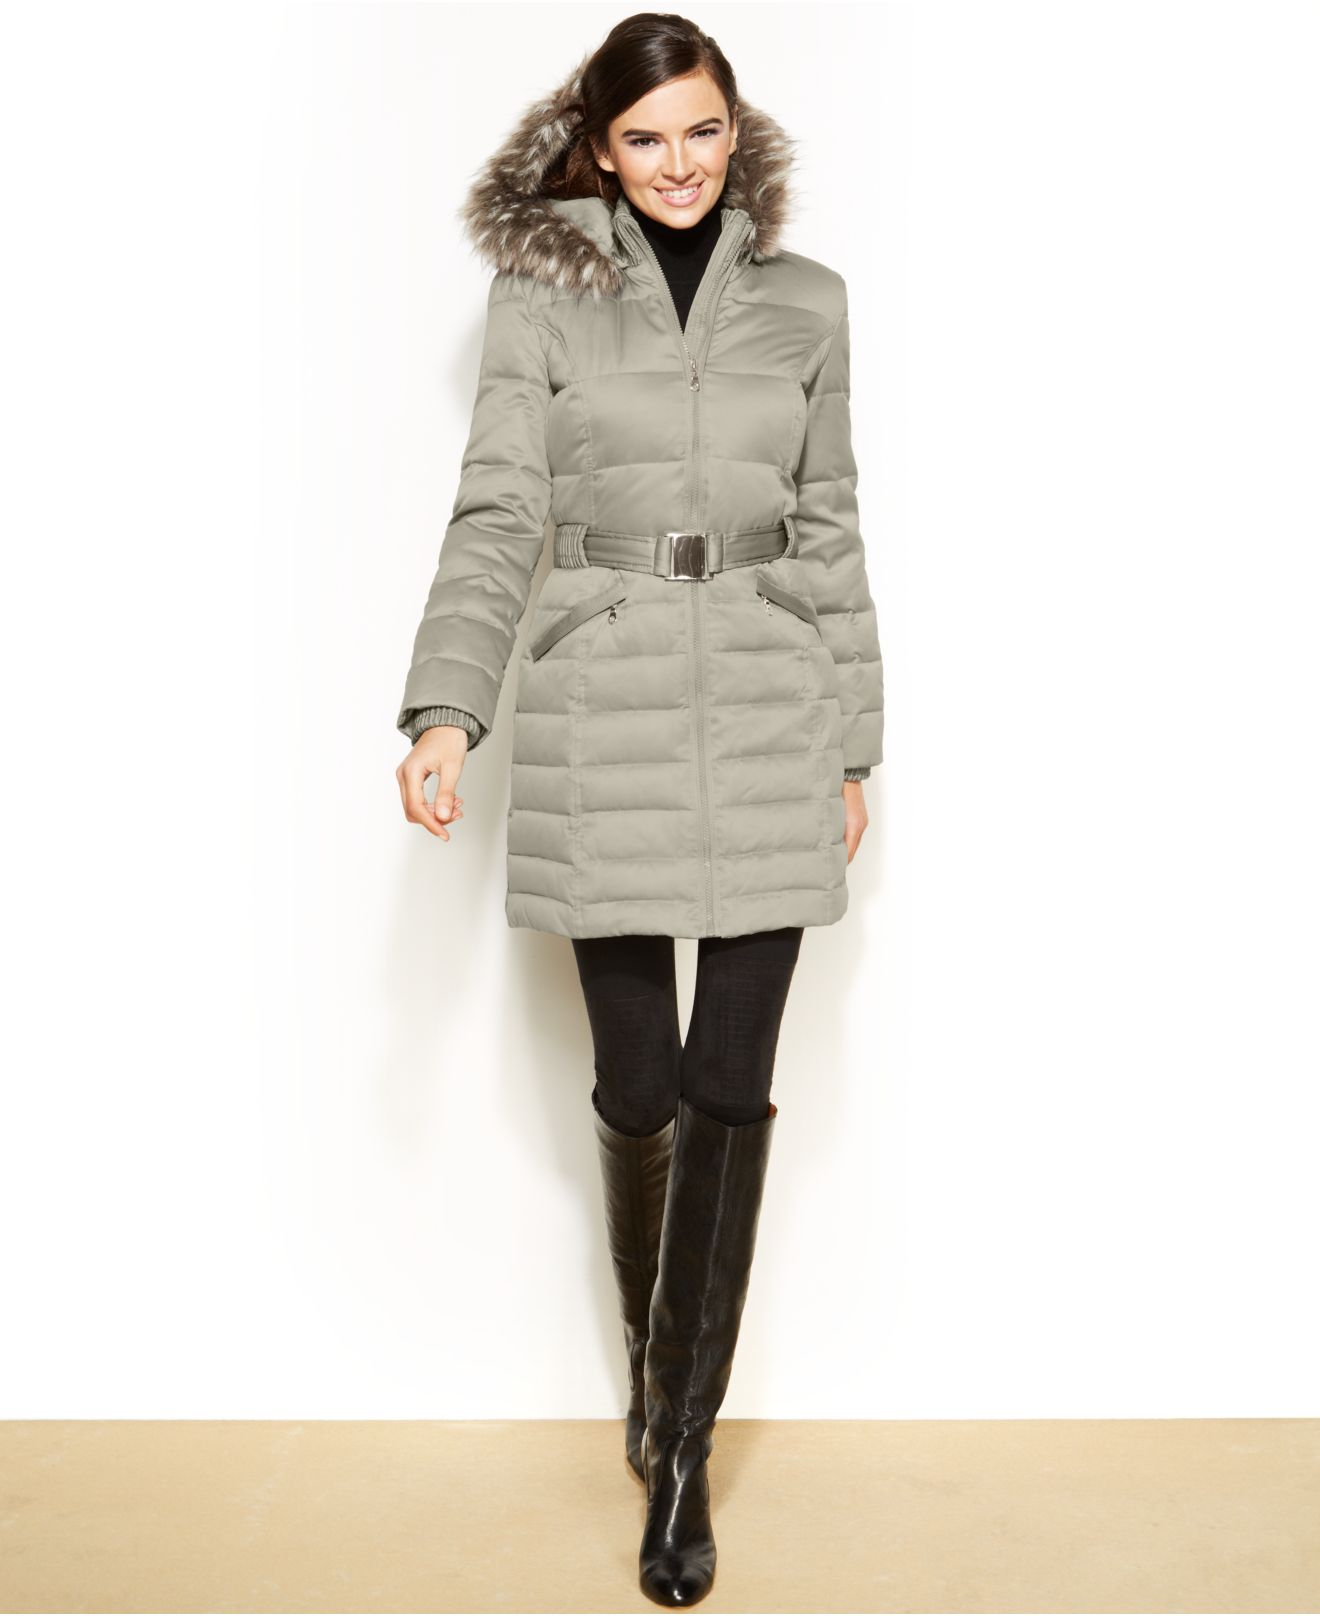 Collection Macys Womens Winter Coats Sale Pictures - Reikian